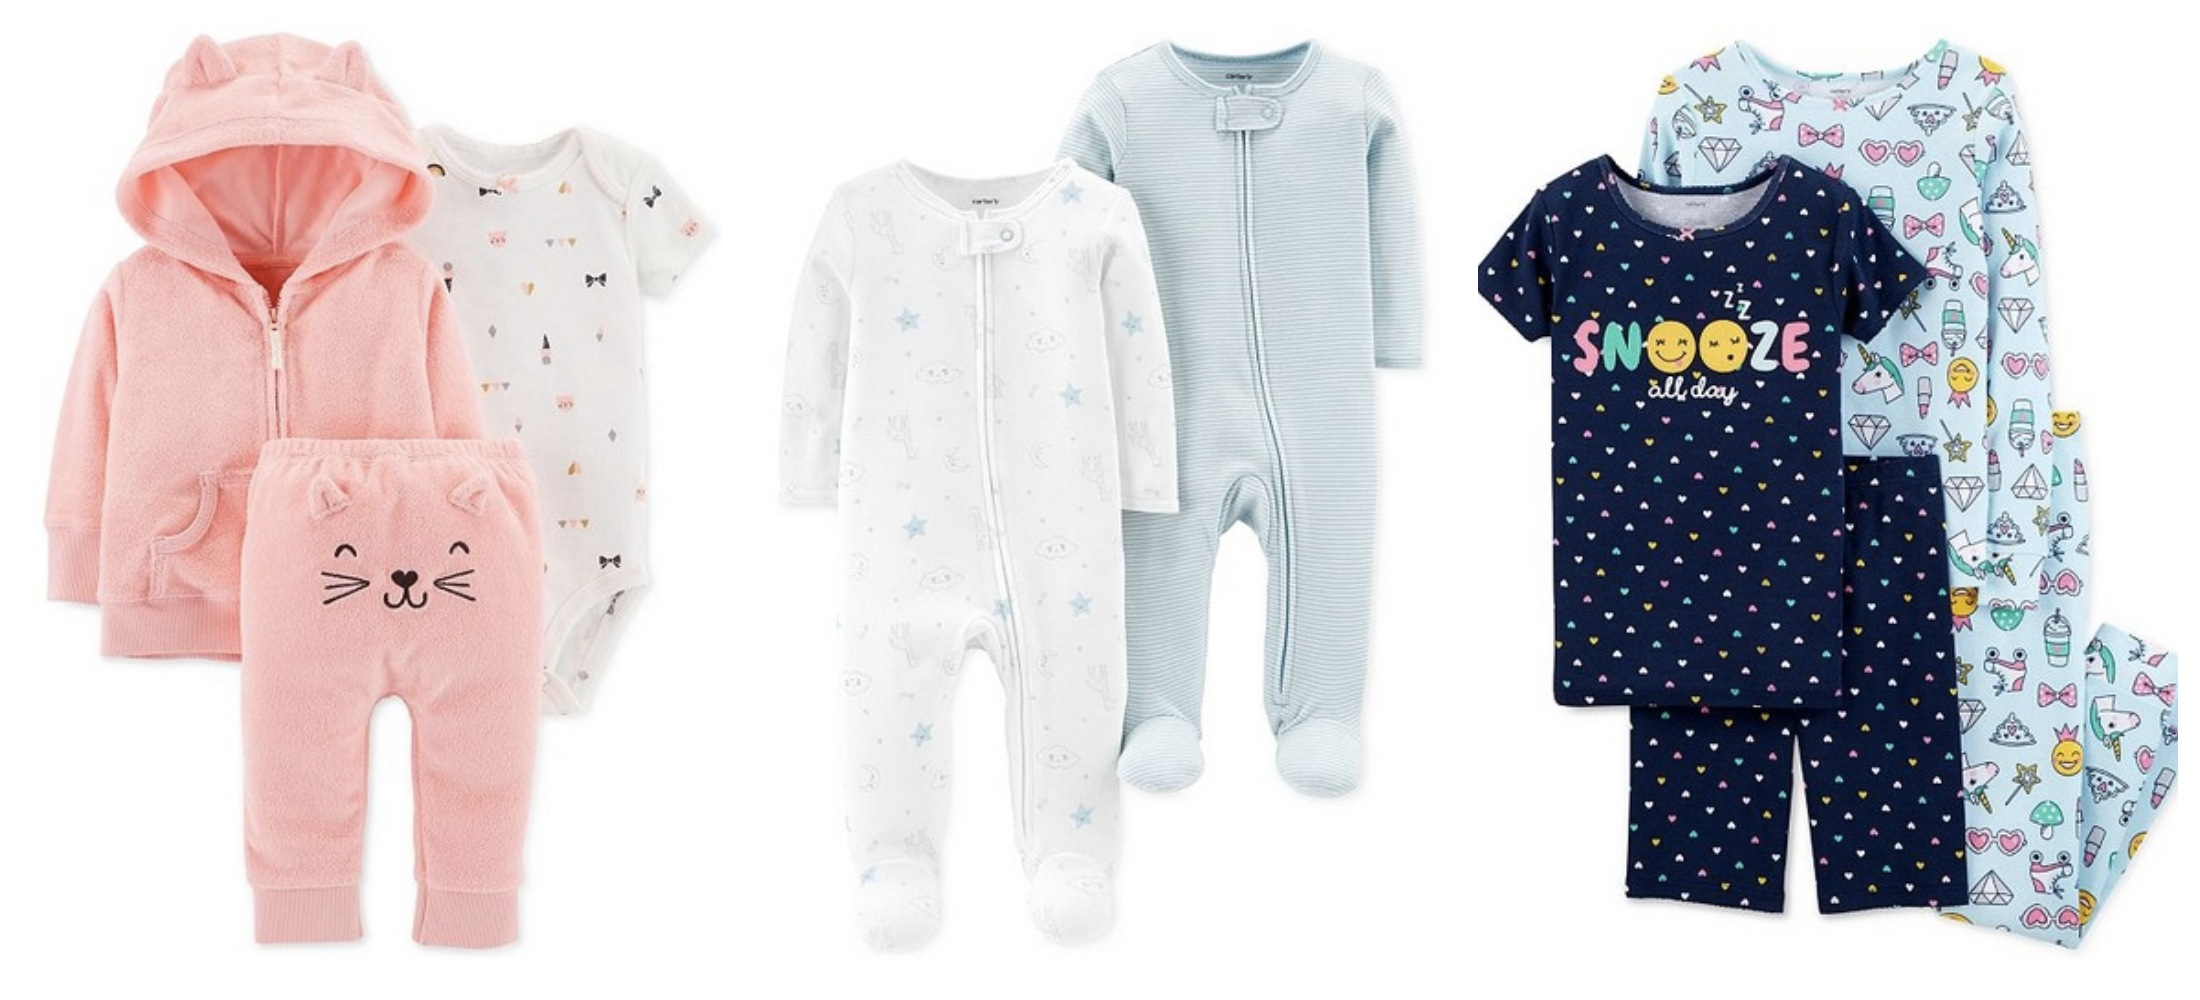 0b45b2ed356d Extra 20% off Carter s Baby and Toddler Clothing Clearance! - Money ...